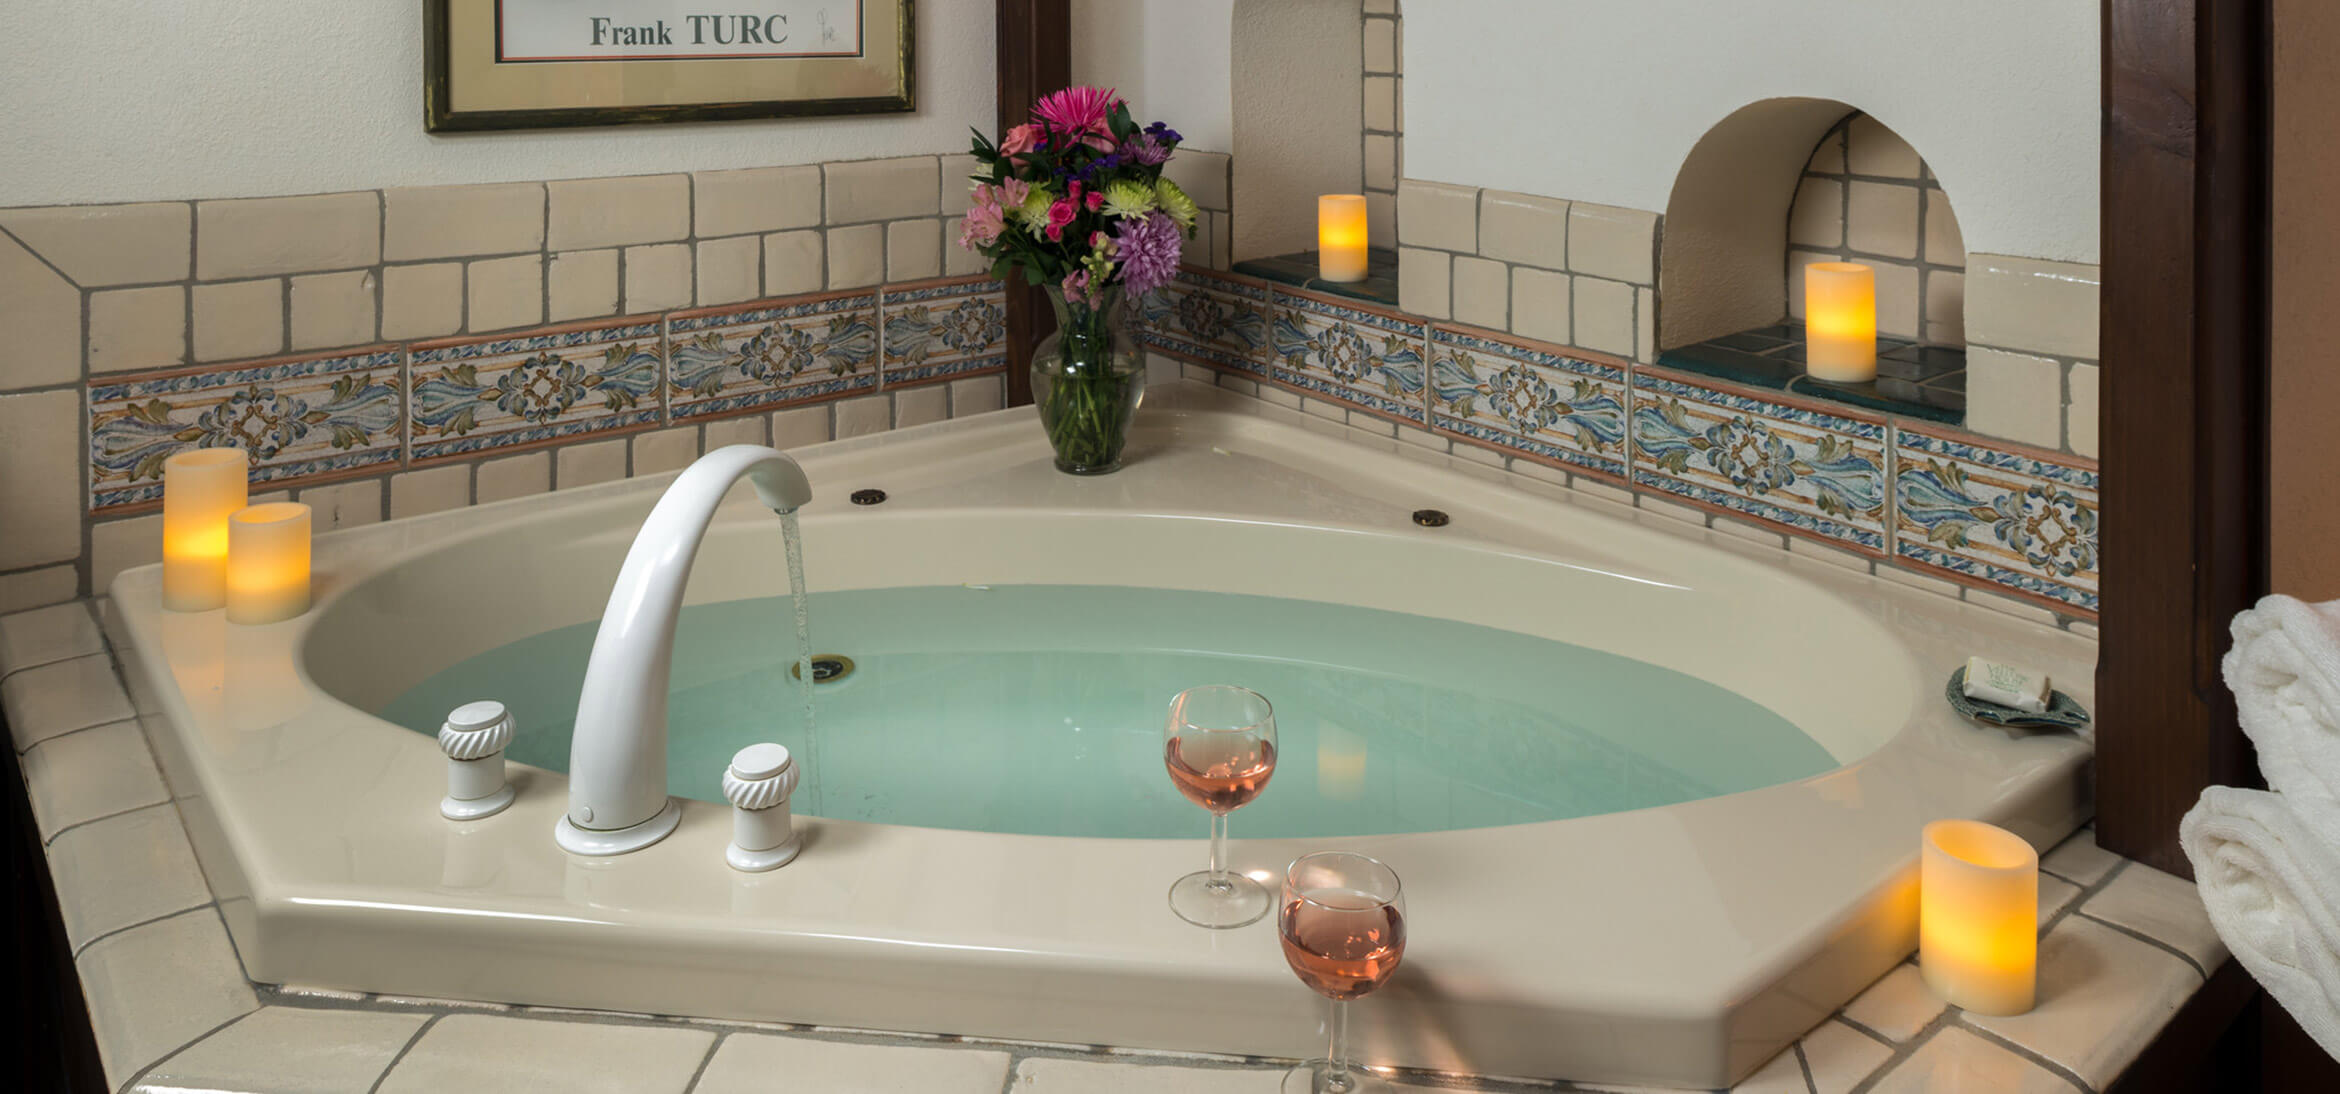 Vineyard Suite Jacuzzi bath